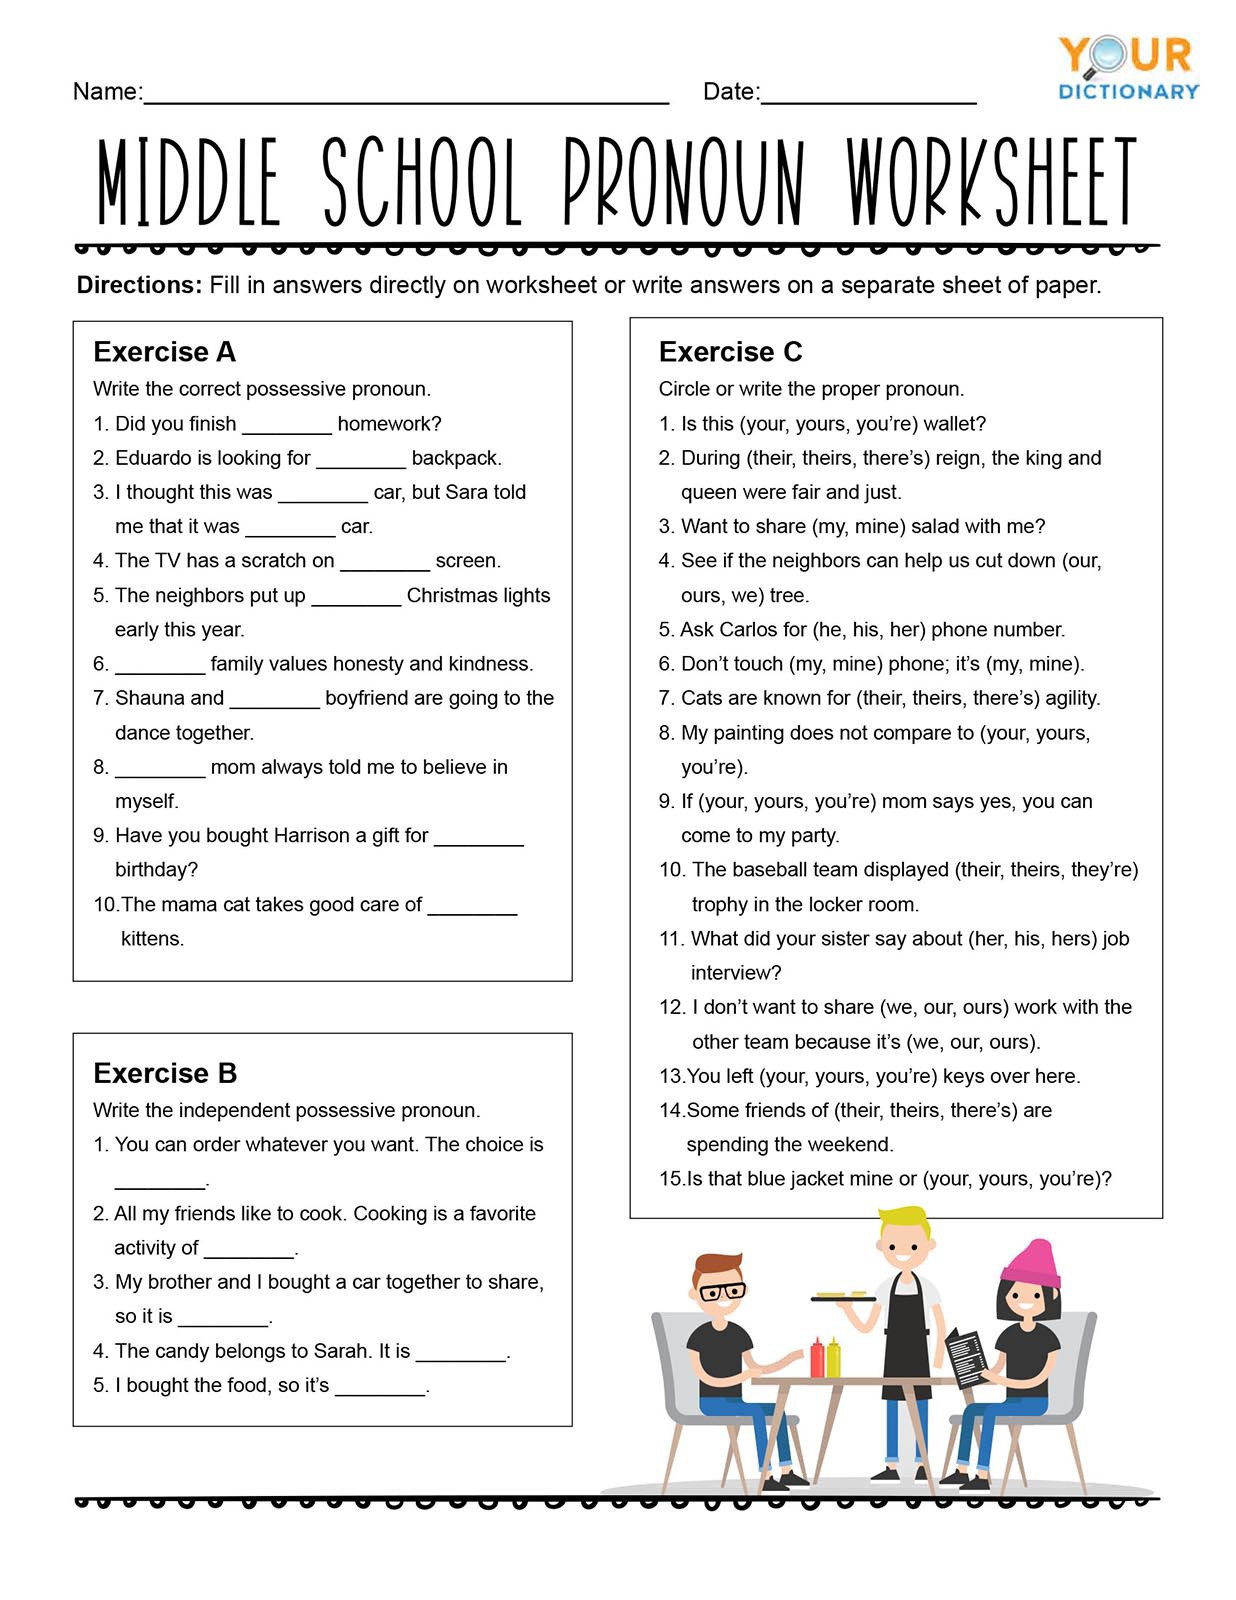 Capitalization Worksheet Middle School Pronoun Worksheets for Practice and Review